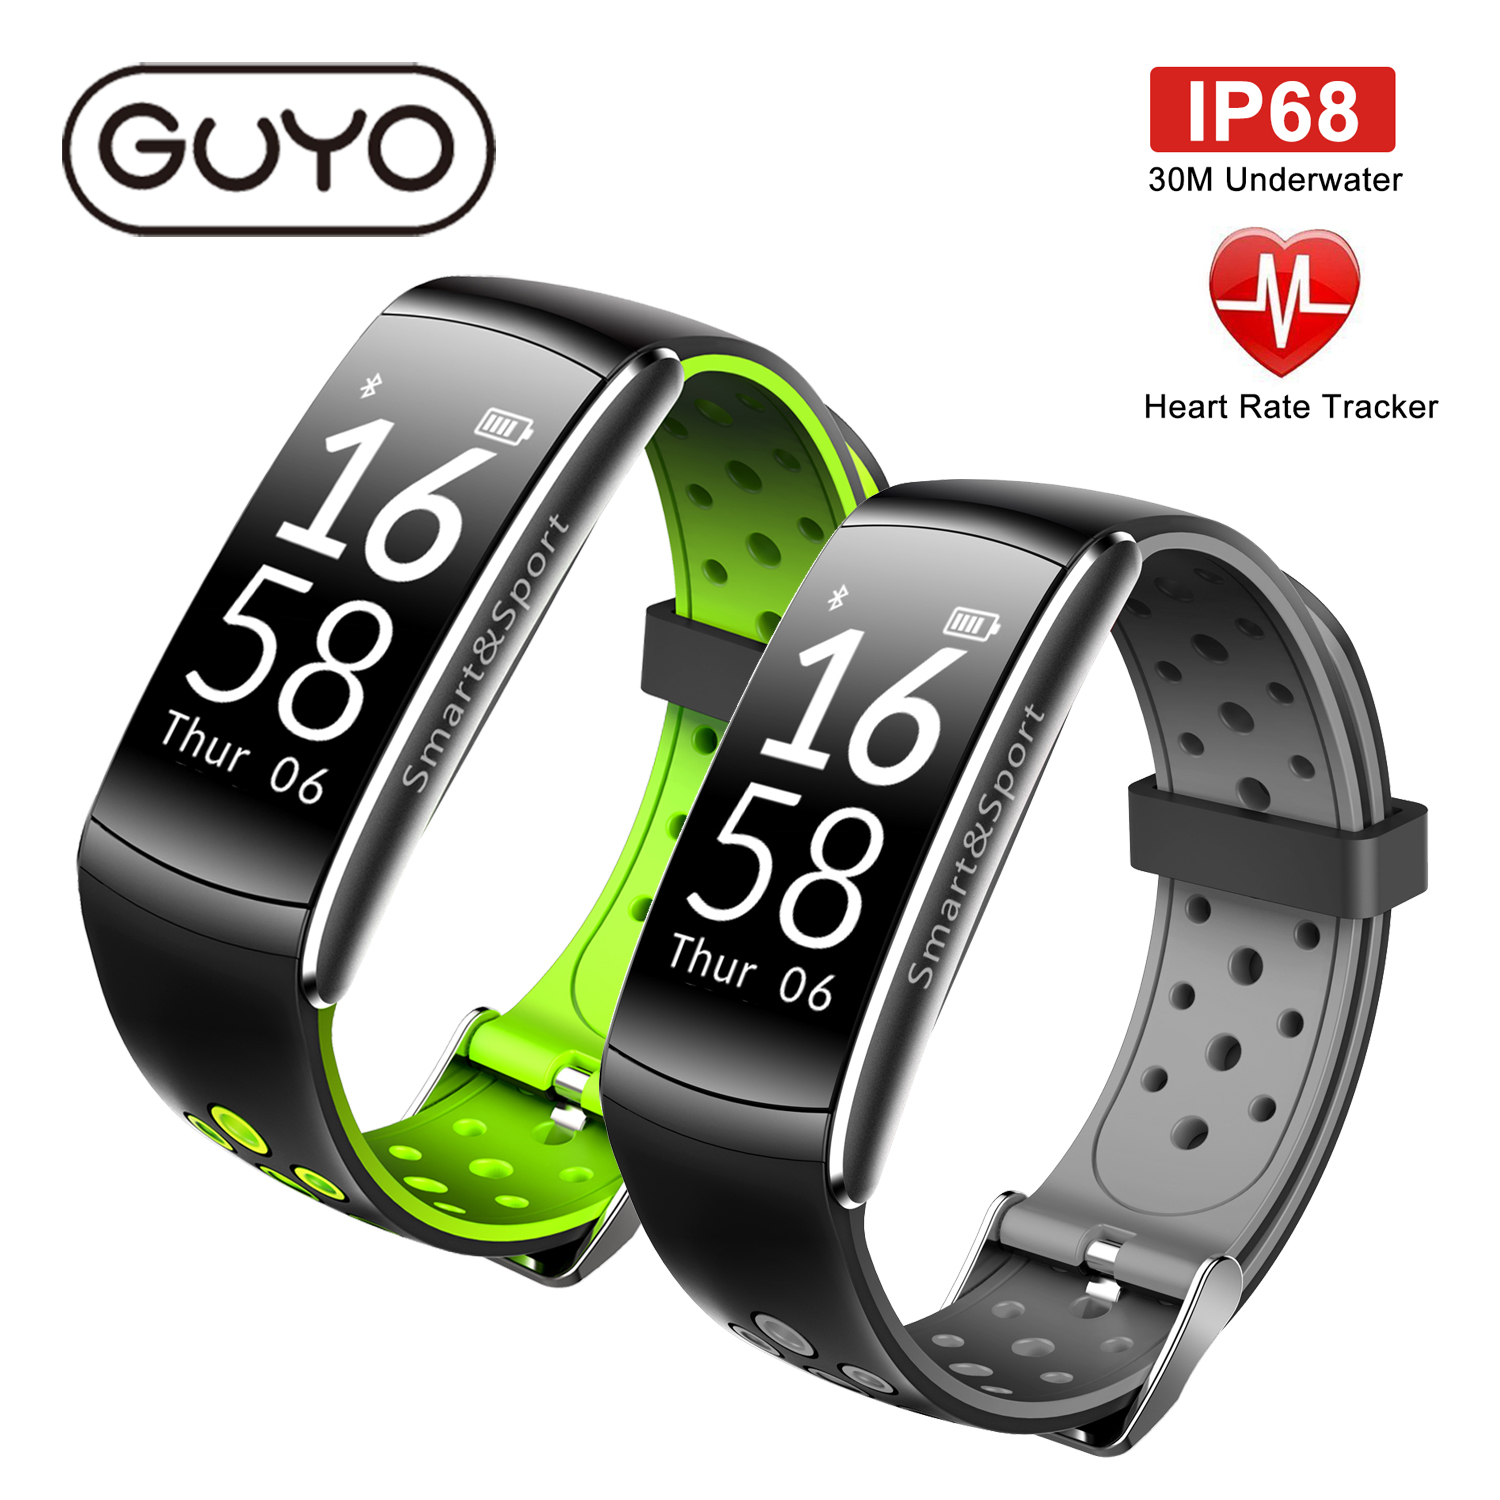 GUYO Smart Watch Heart Rate Monitor IP68 Waterproof Fitness Tracker Blood Pressure gps Bluetooth For Android IOS women men vacation